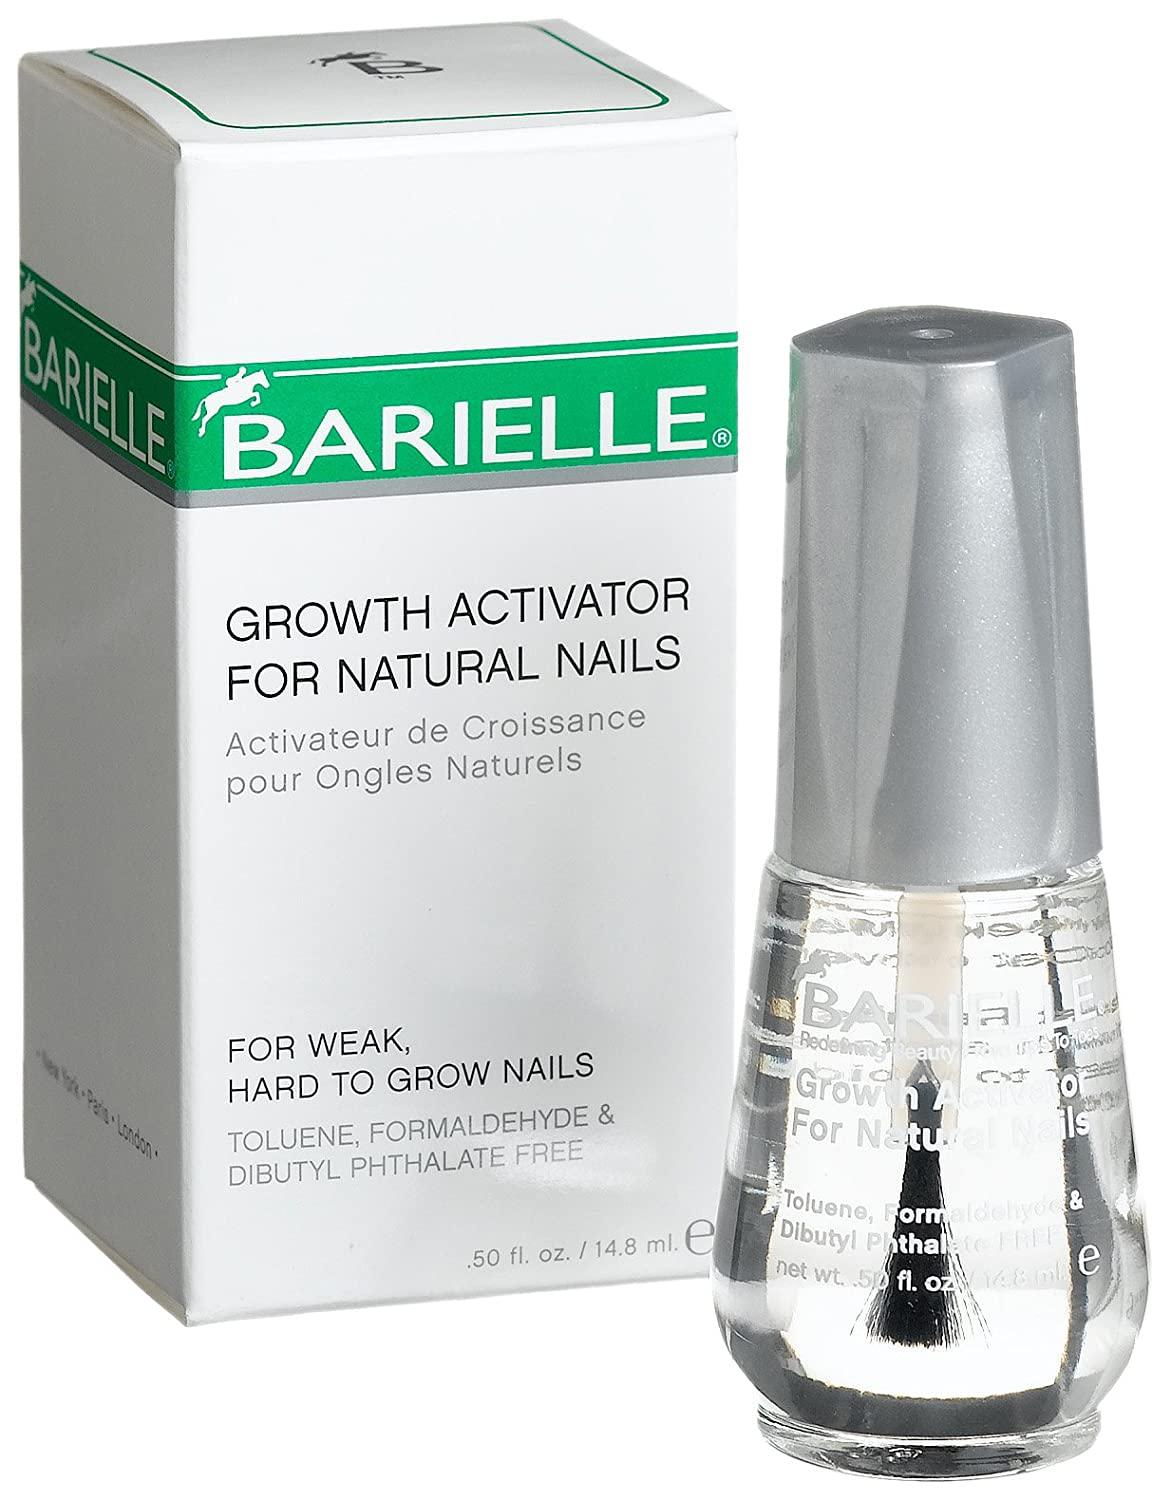 Barielle Growth Activator For Natural Nails 14.8 ml Fisk Industries Inc. 1024